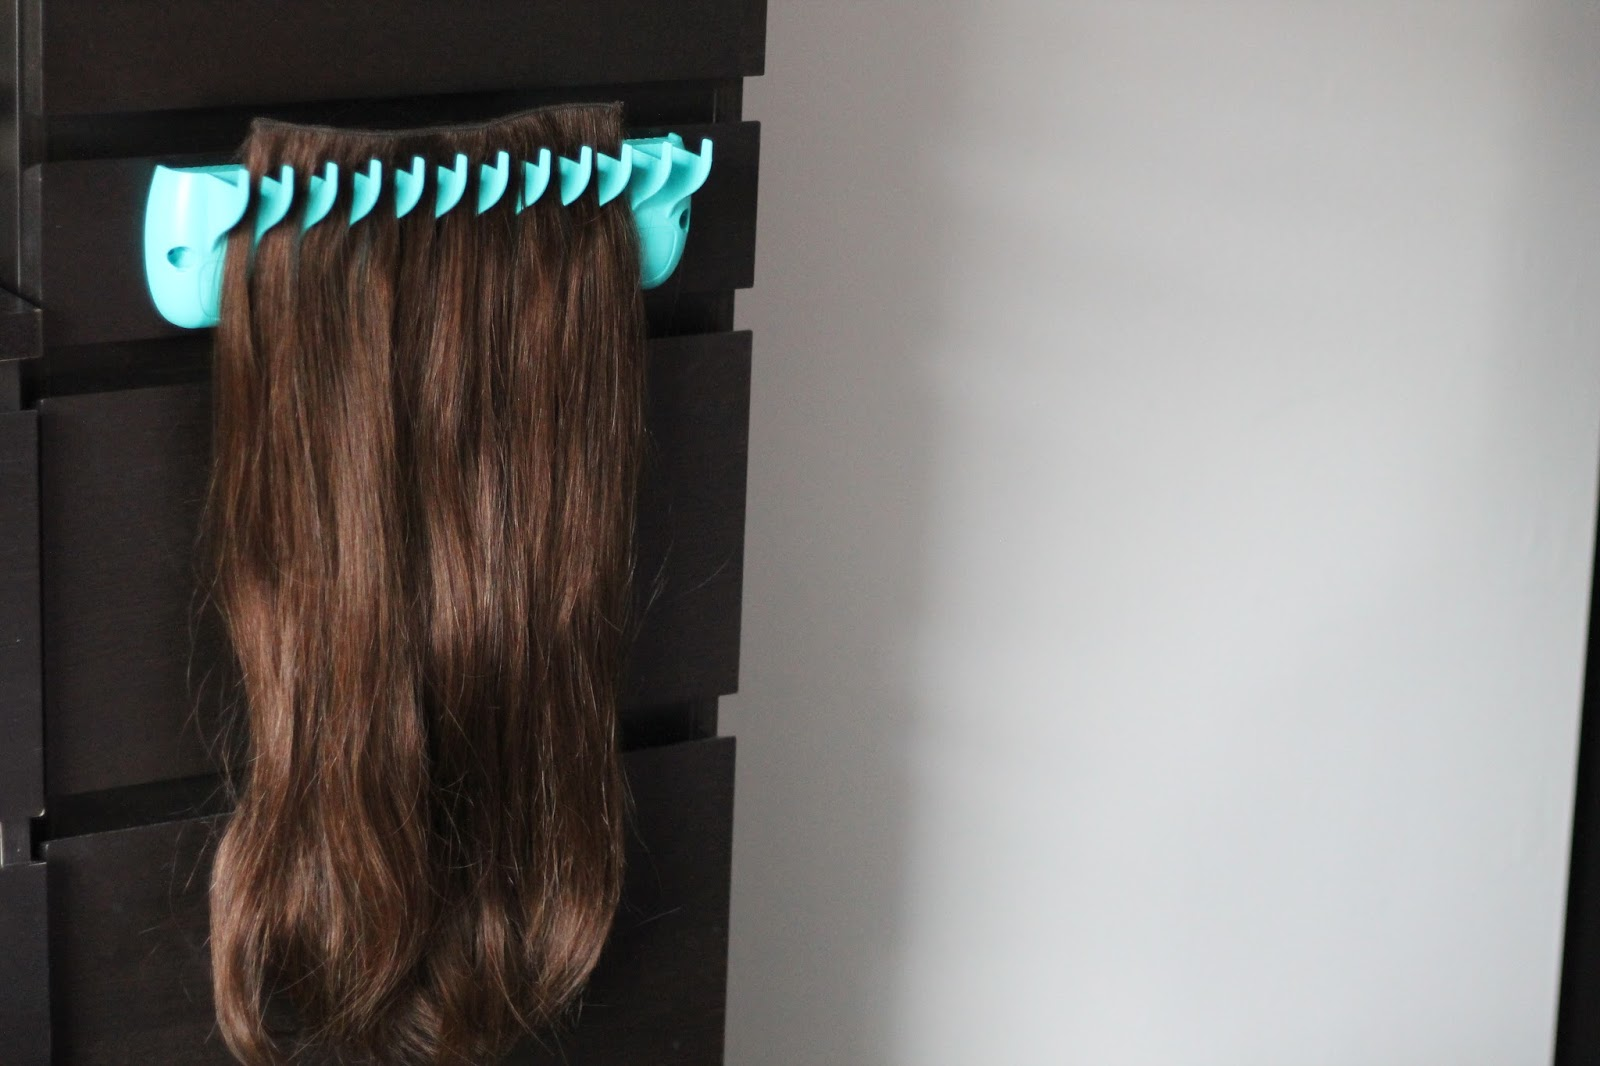 Beauty Storing Hair Extensions At Home Charli Blogs